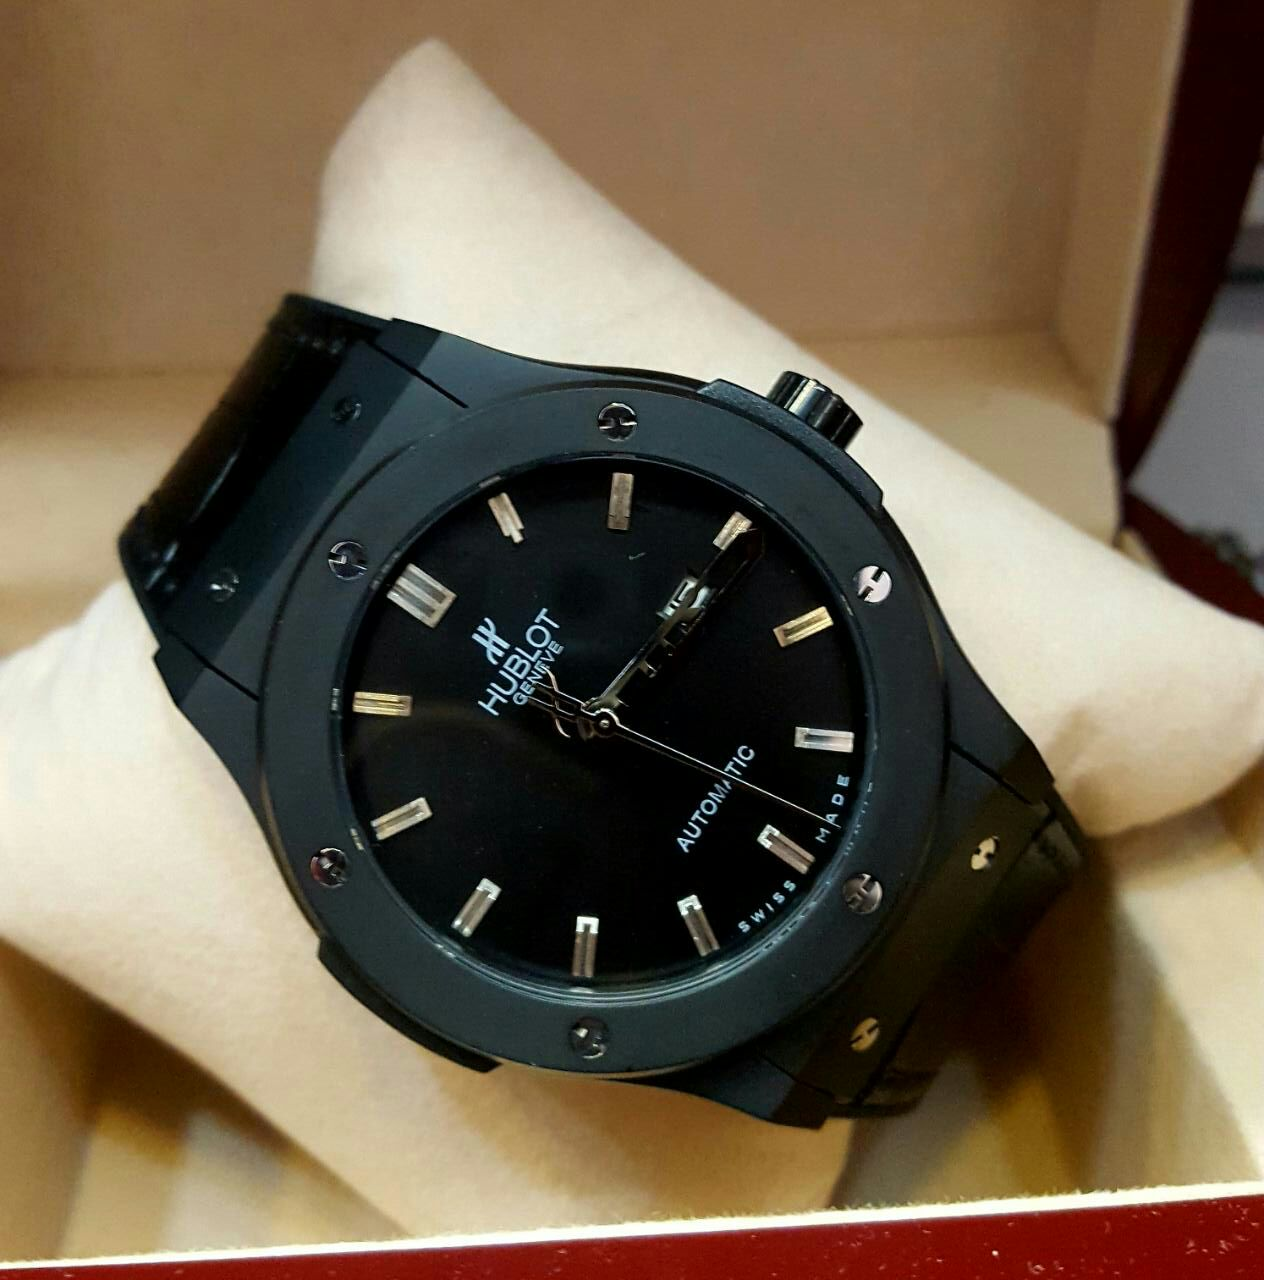 Hublot Automatic Black Magic For Men Price In Pakistan